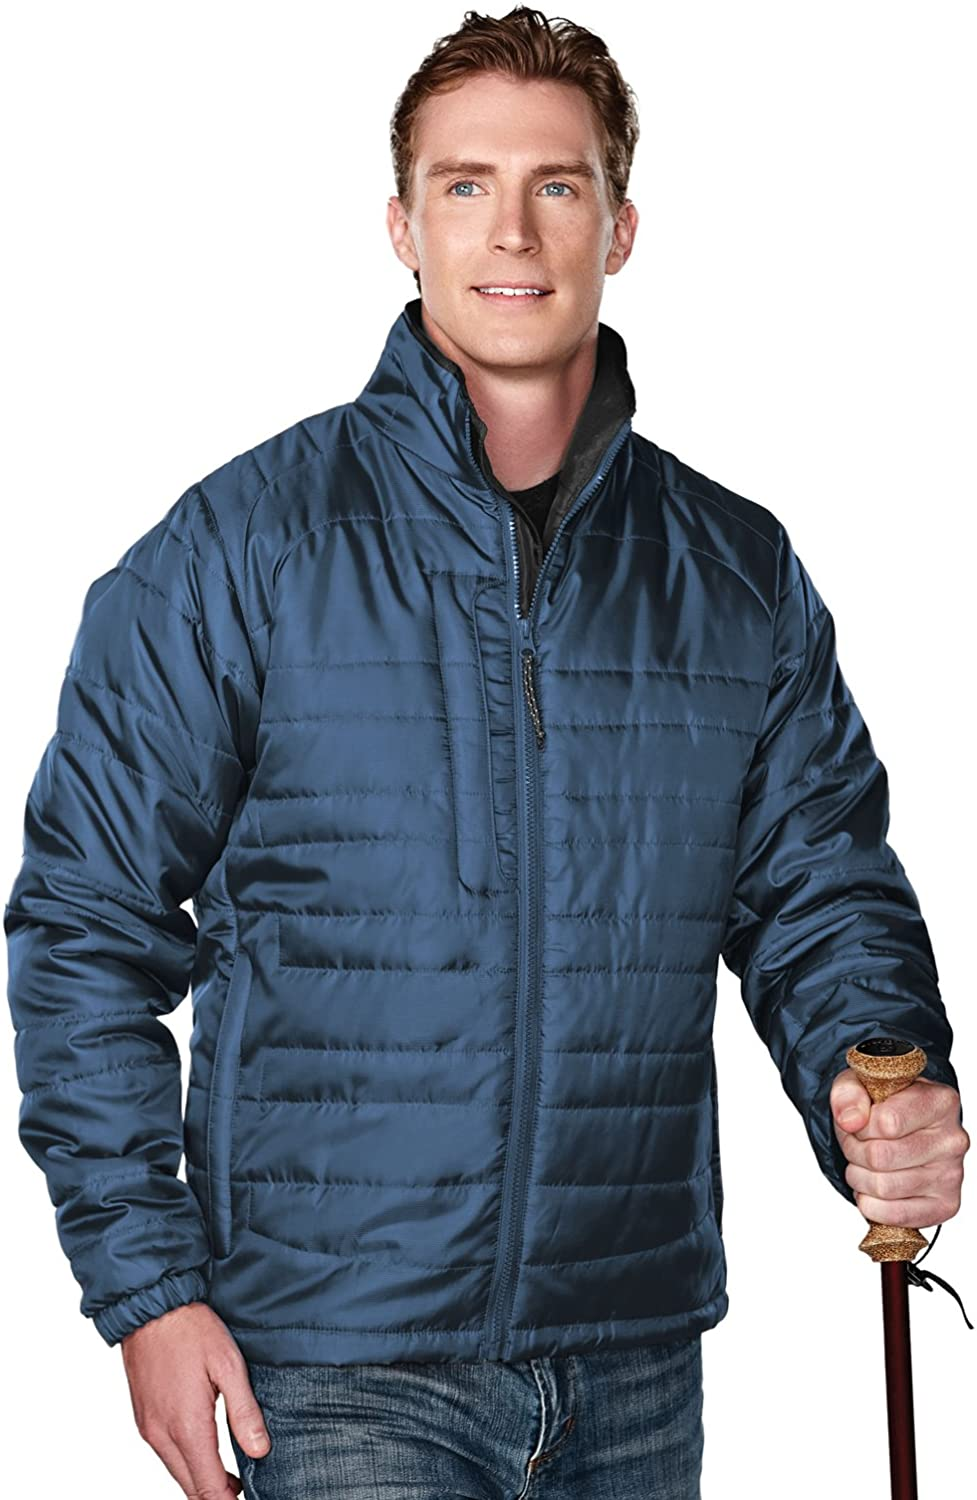 Tri-Mountain Men's 100% Polyester Rib- Stop Long Sleeve Quilt Jacket With Water Resistent, L, Atlantic/Charcoal